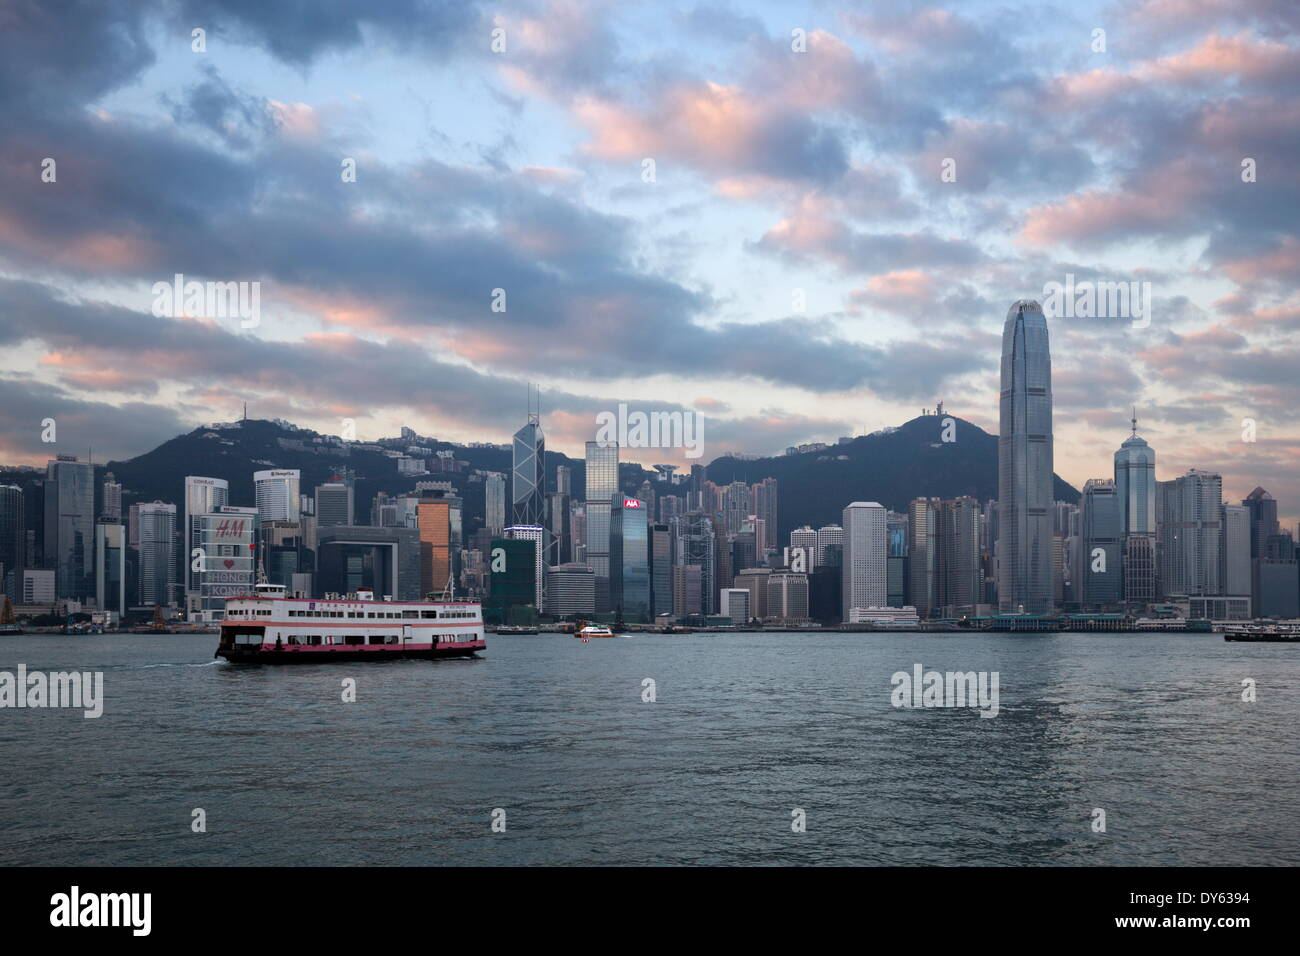 View over Victoria harbour to Hong Kong Island and The Peak at dusk, Hong Kong, China, Asia - Stock Image